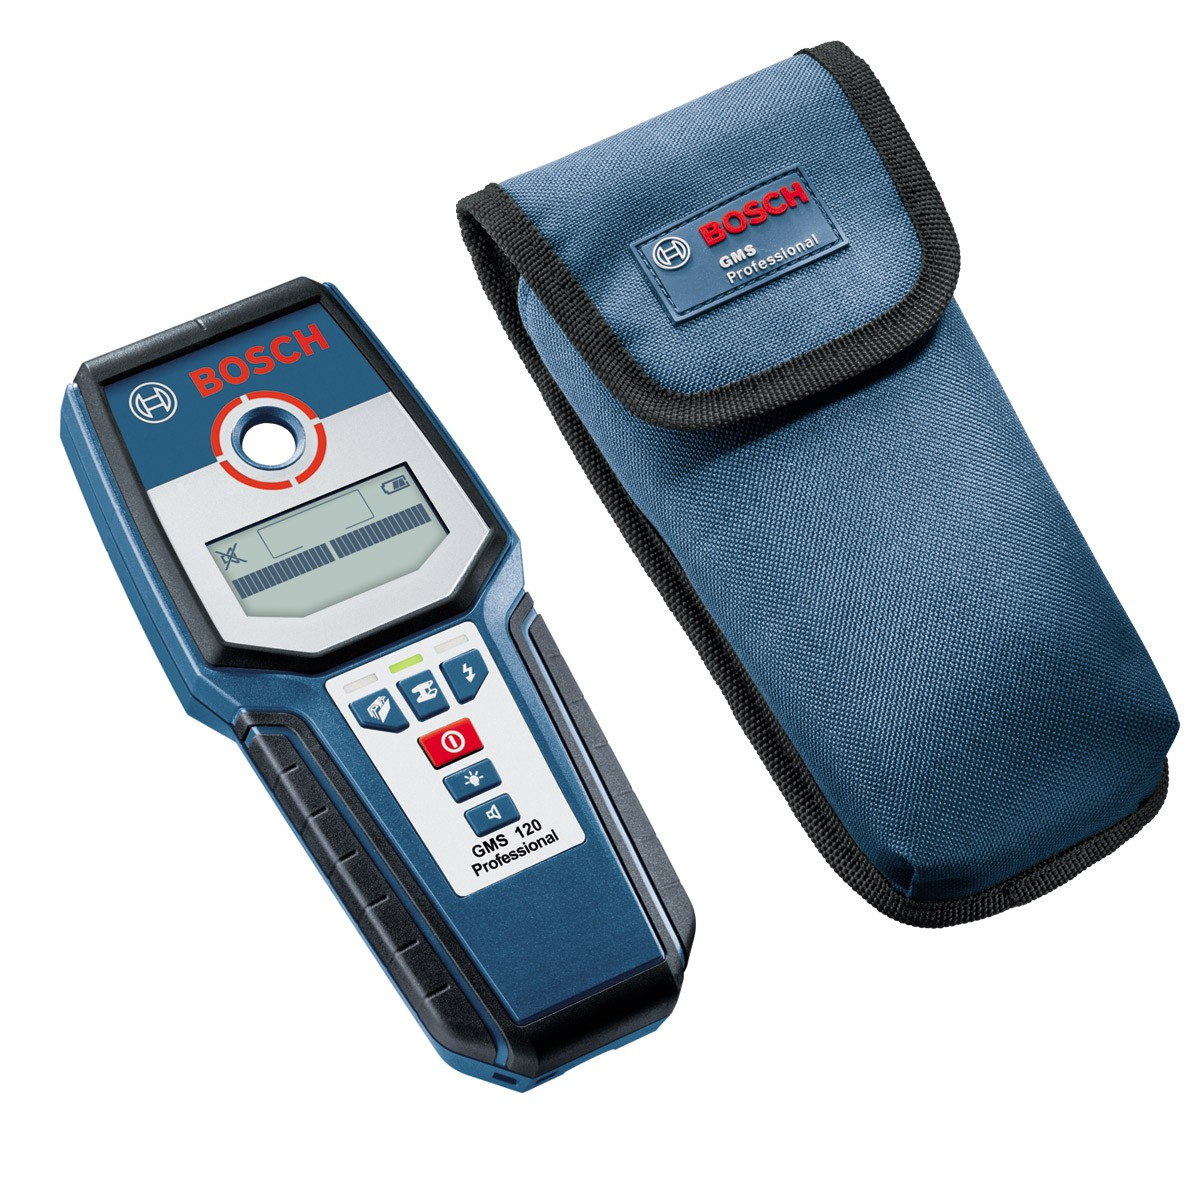 Bosch Detector Bosch Gms 120 Professional Multi Material Detector